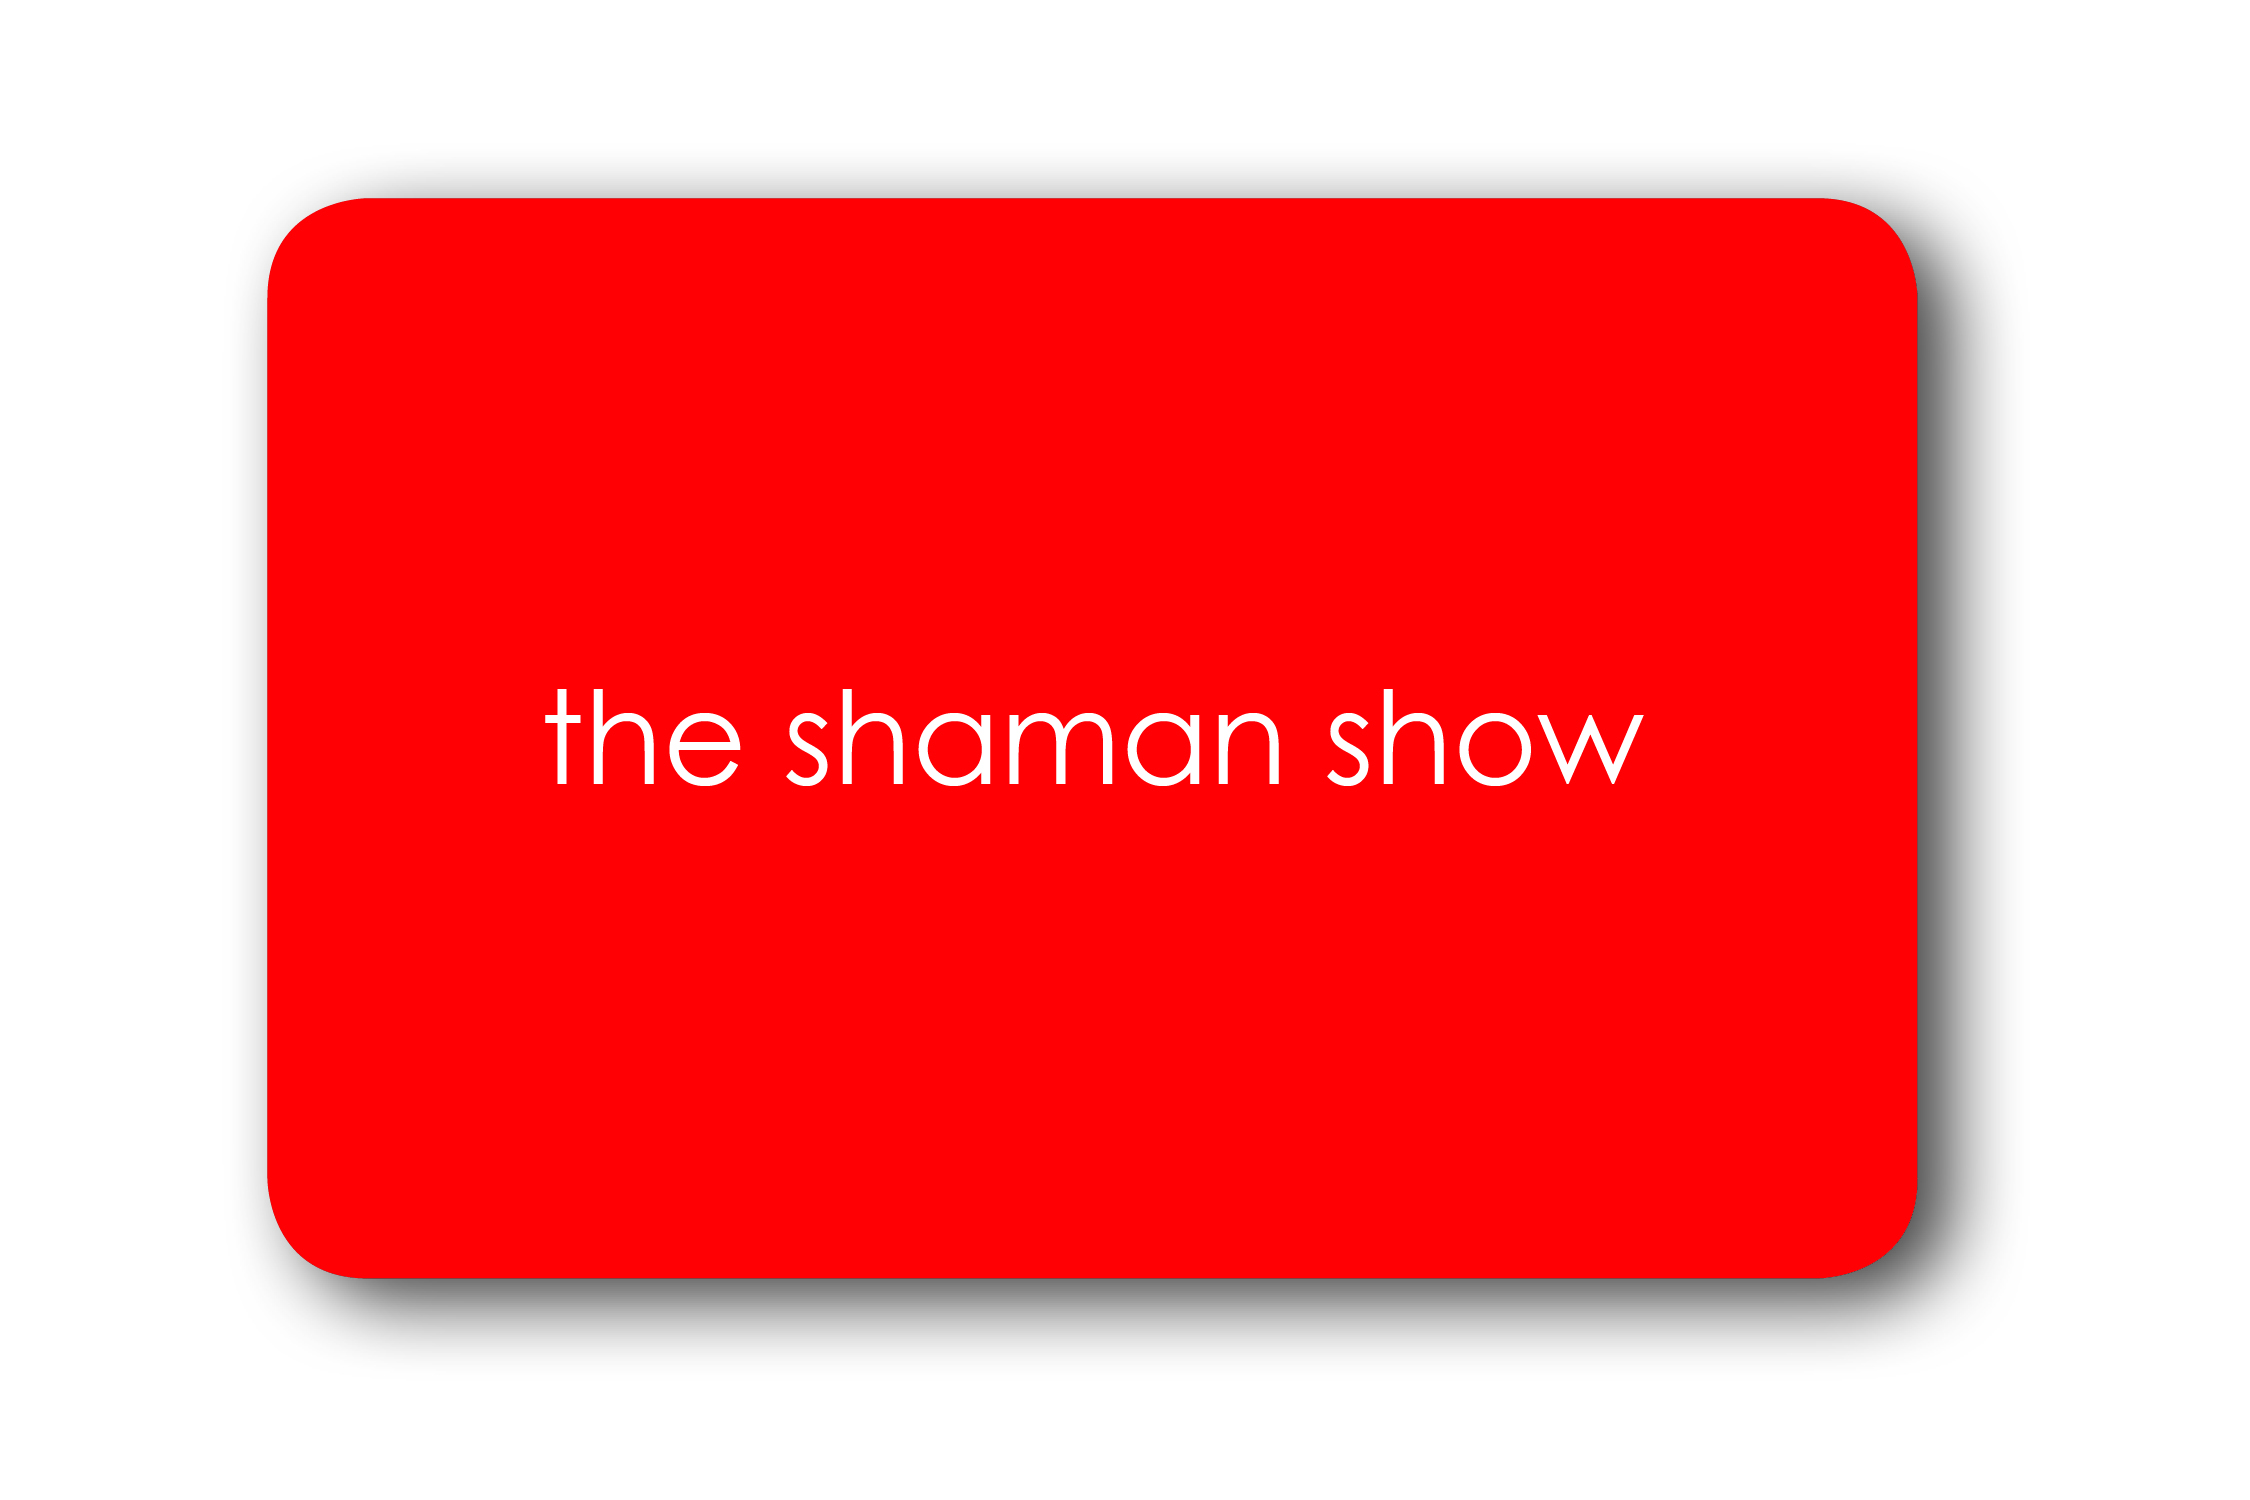 the shaman show - front of card with rounded shadow copy.jpg